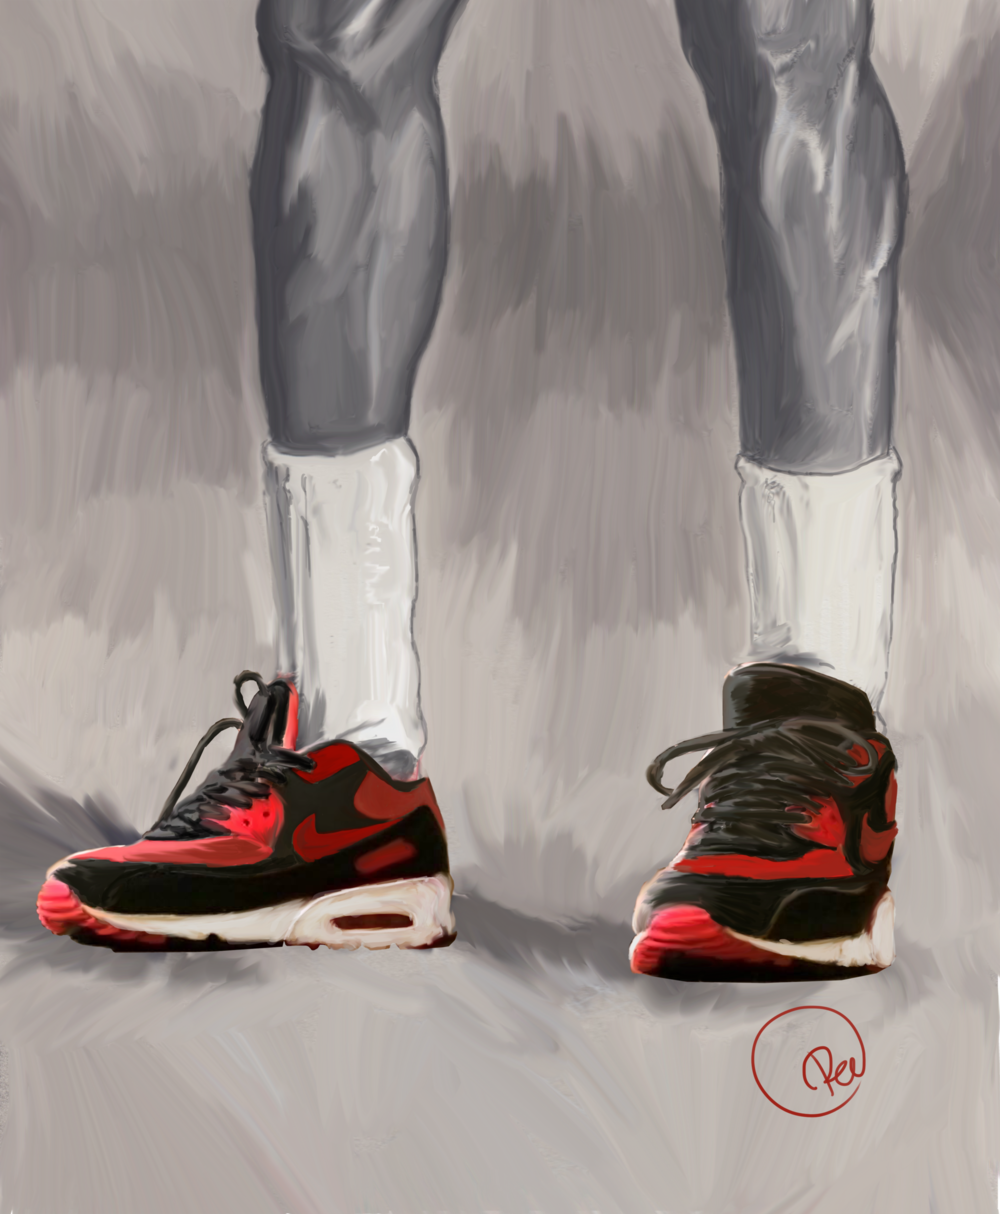 "MICHAEL JORDAN - For this tribute to Michael Jordan's influence and contribution to basketball and entertainment, Pel of PELNYC reinvents the artwork he created of the Nike Band One advertisement. Pel was 1 of 50 worldwide artists selected to create art for ""Michael Jordan's 50th birthday celebrated through Nike"" collection featured in the Houston Museum of fine arts in 2013."